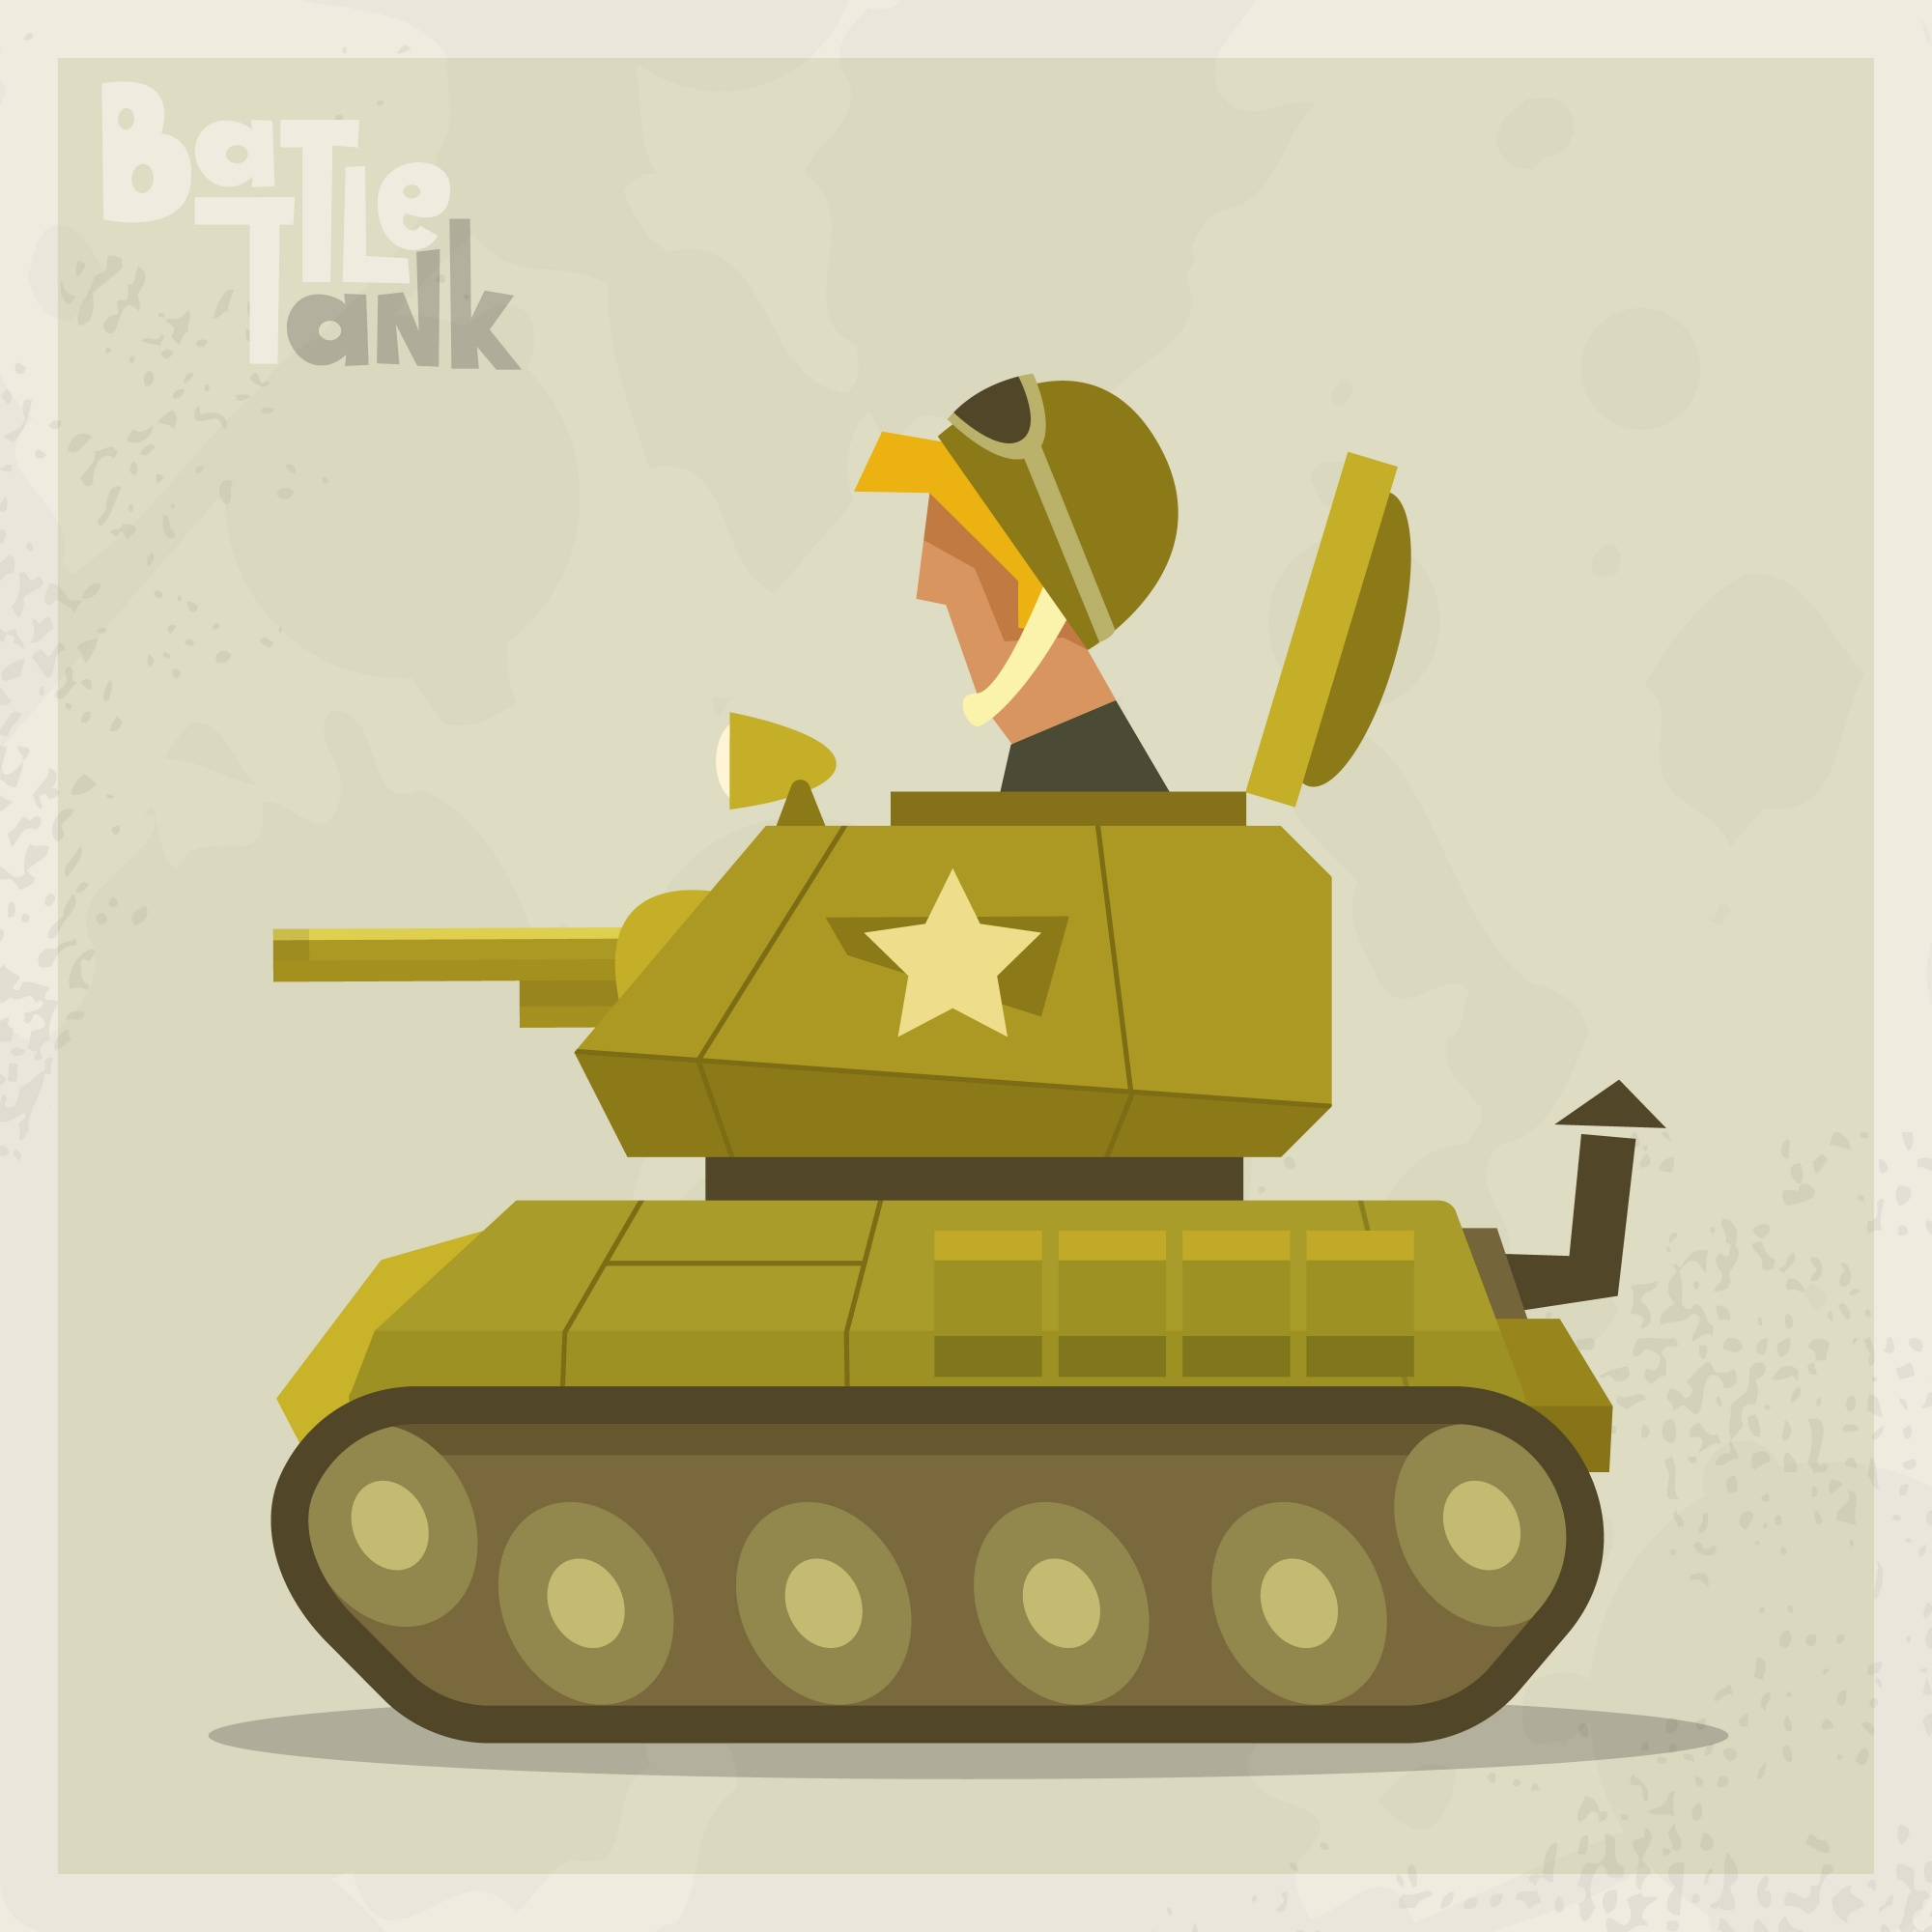 Green tank background